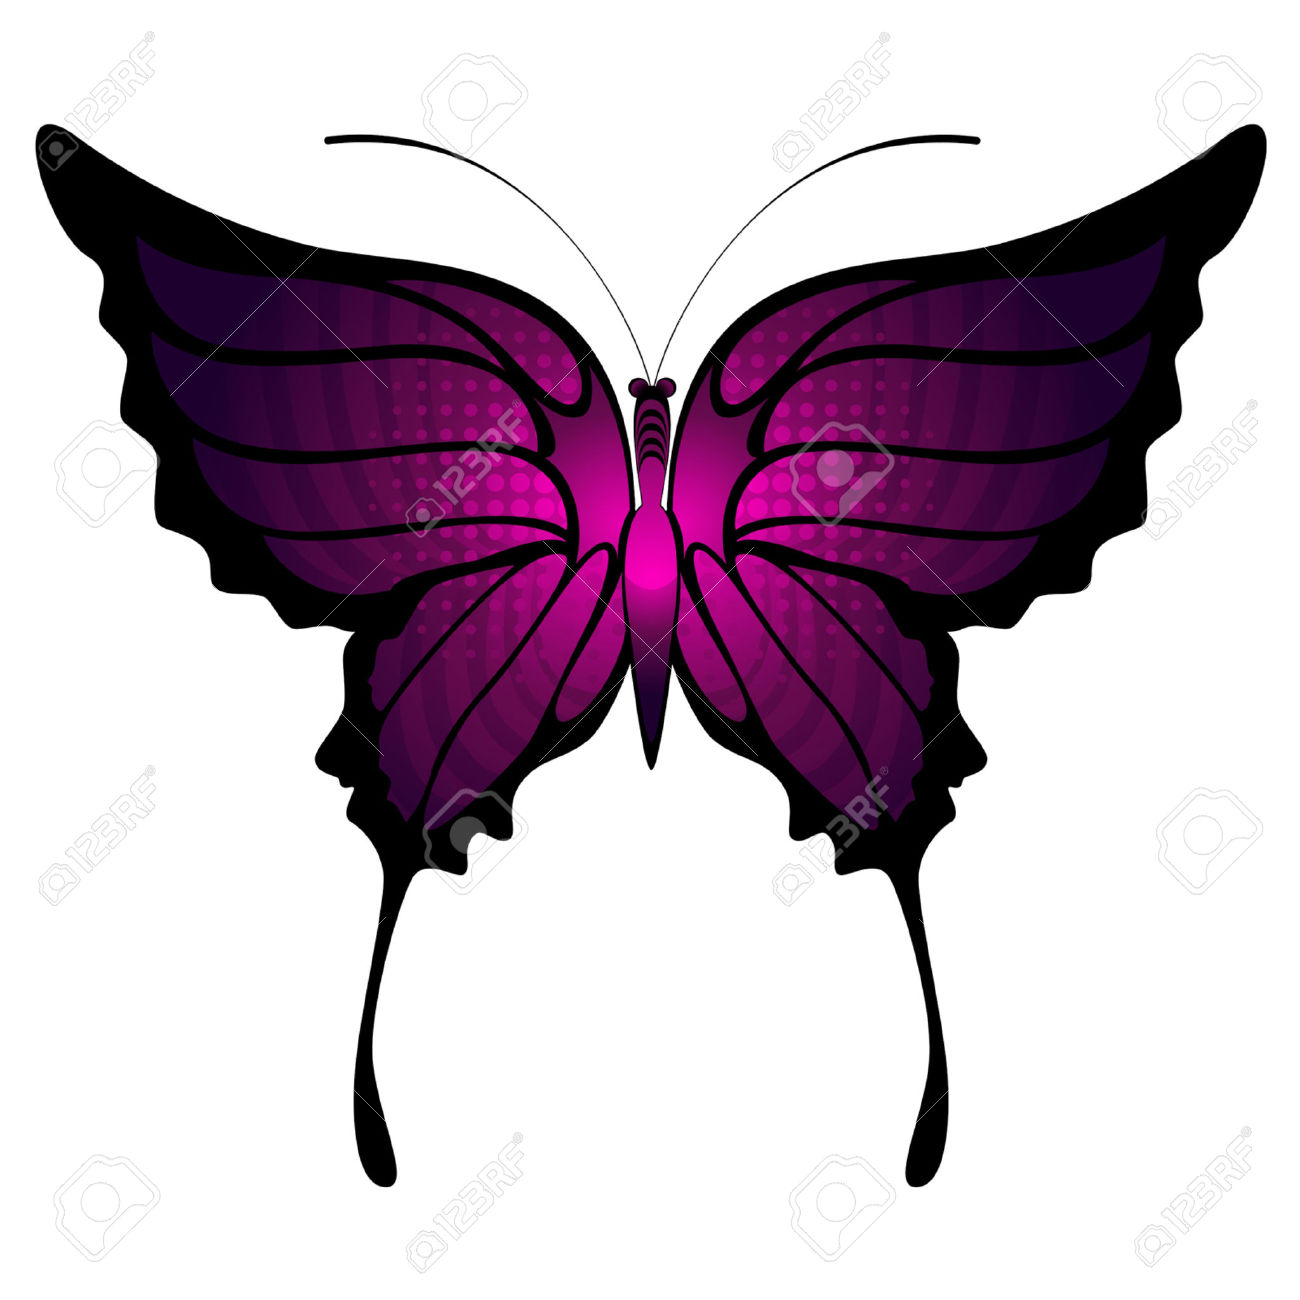 Tropical Butterflies Are Isolated Royalty Free Cliparts, Vectors.